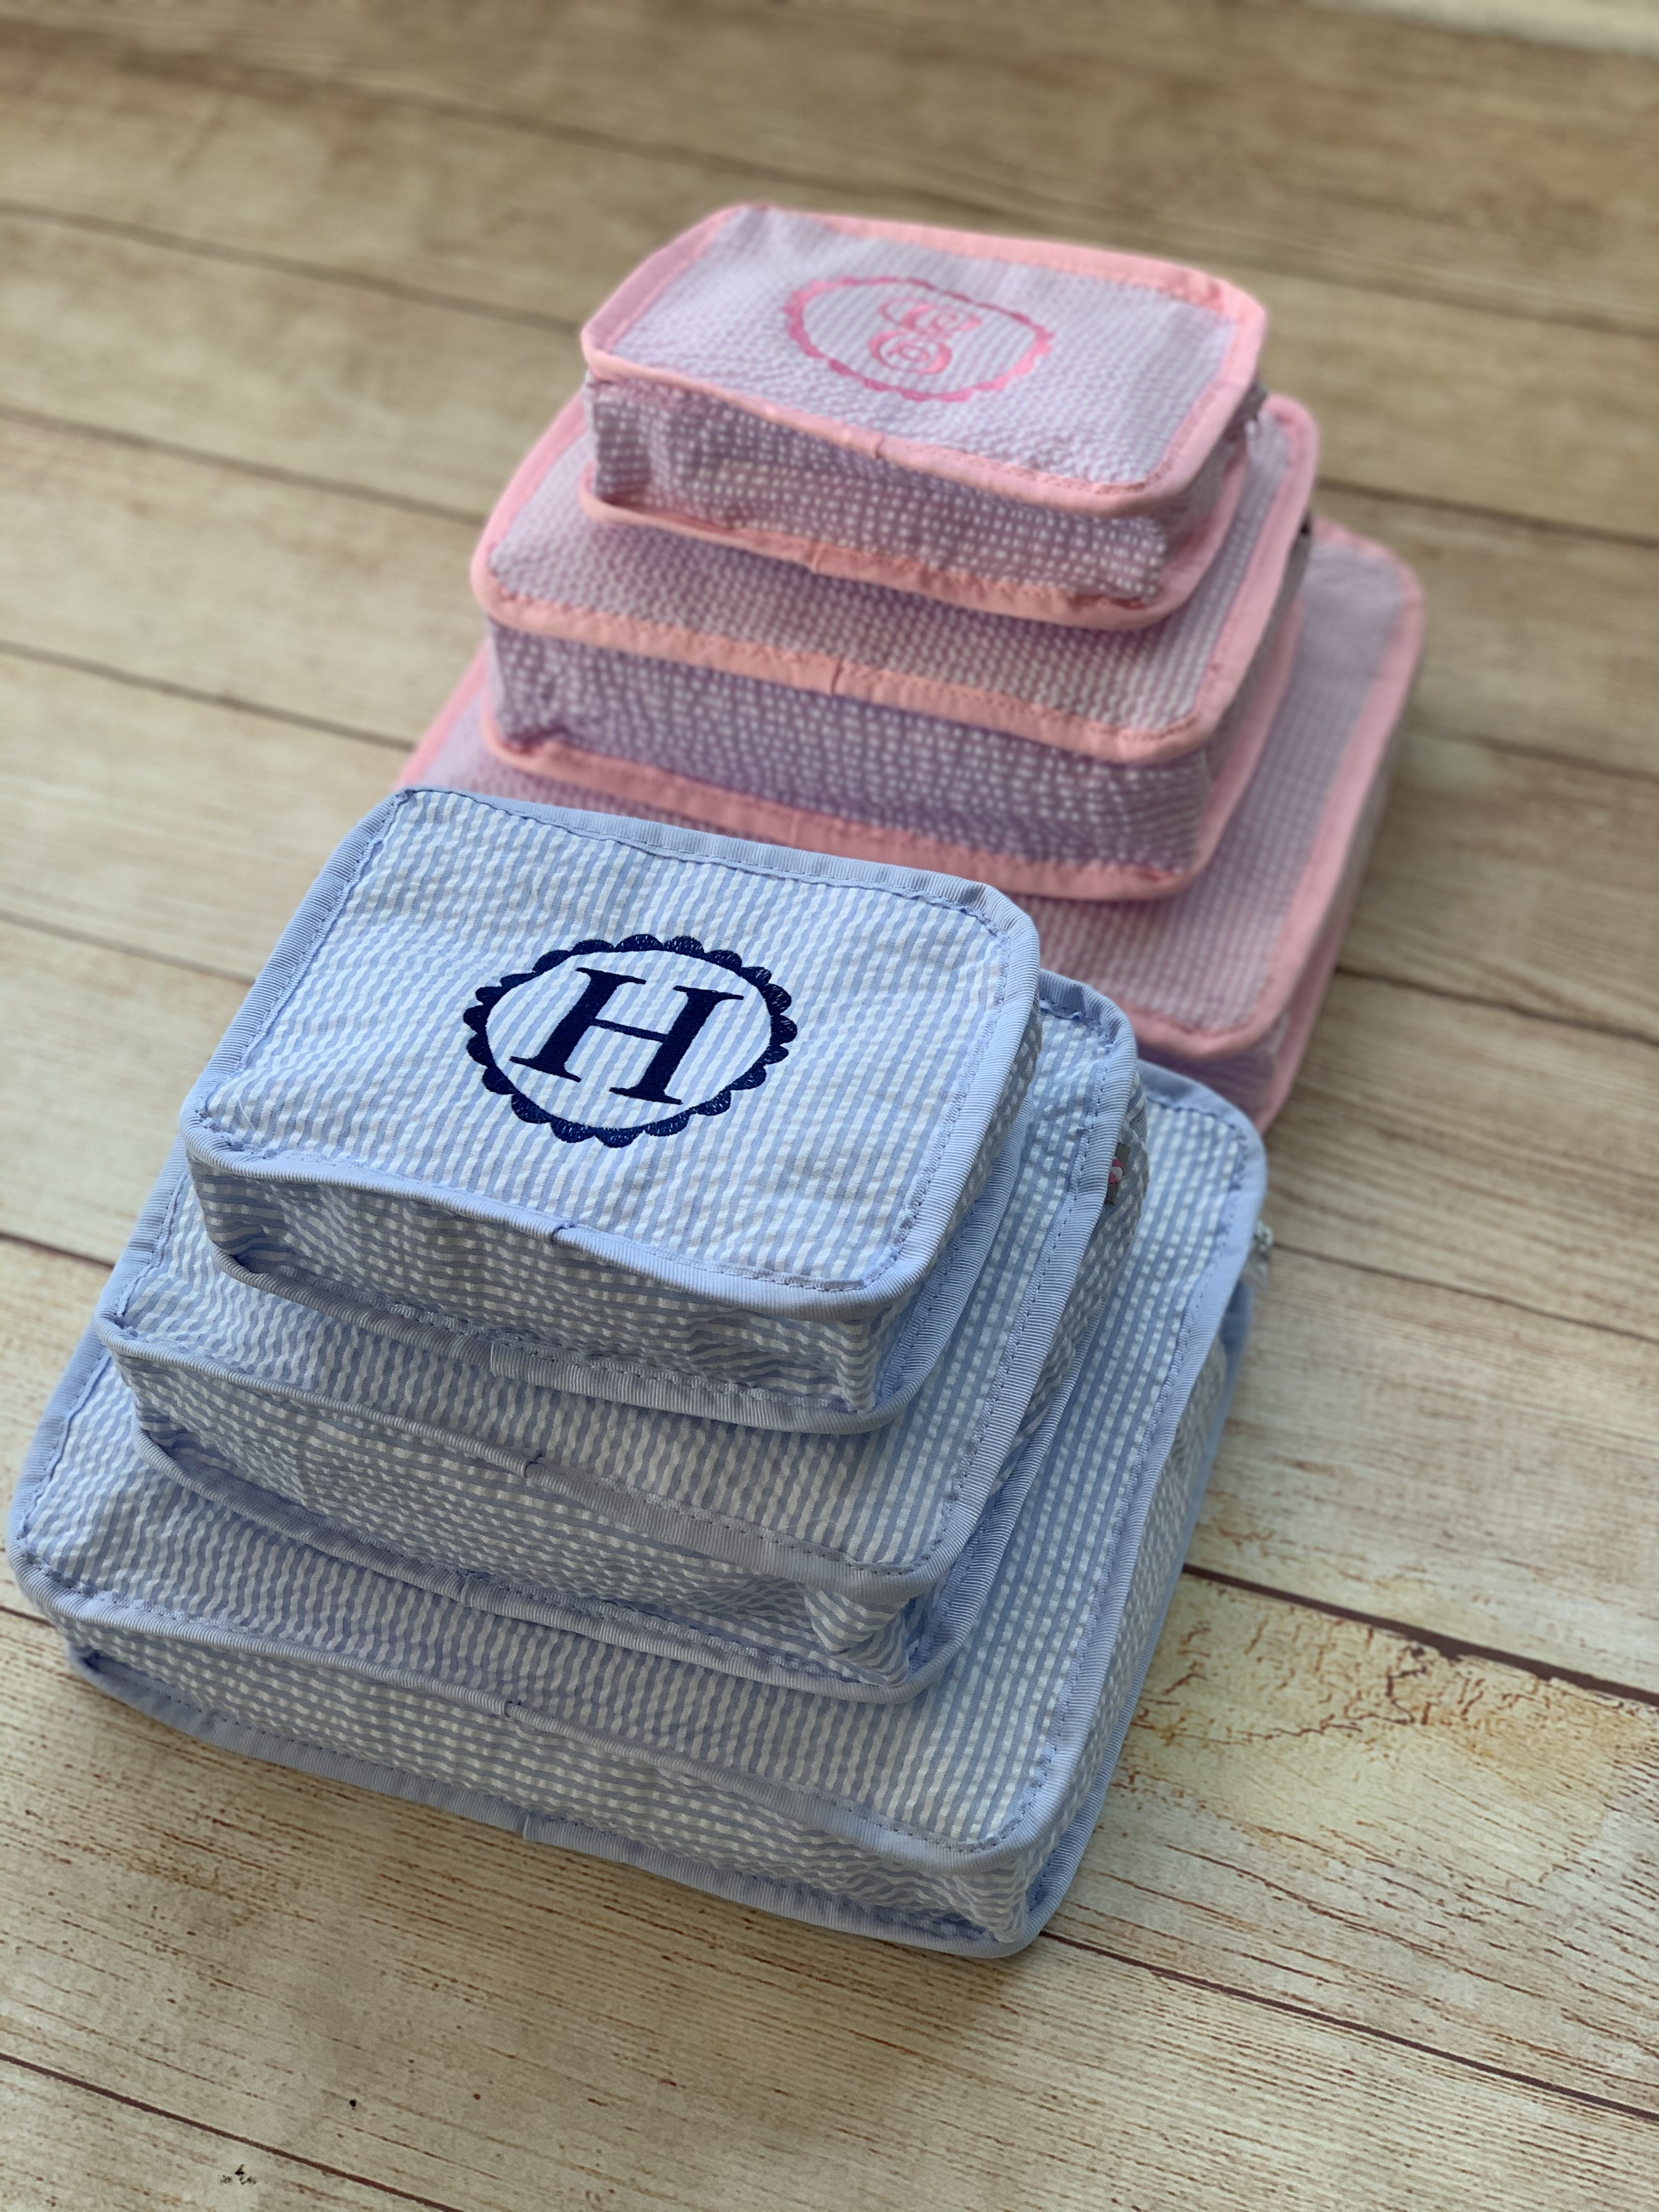 Pack 'em and stack 'em!  Great items for traveling, keep essential items together and easy to find.  Expertly embroidered by Wicked Stitches Gifts.